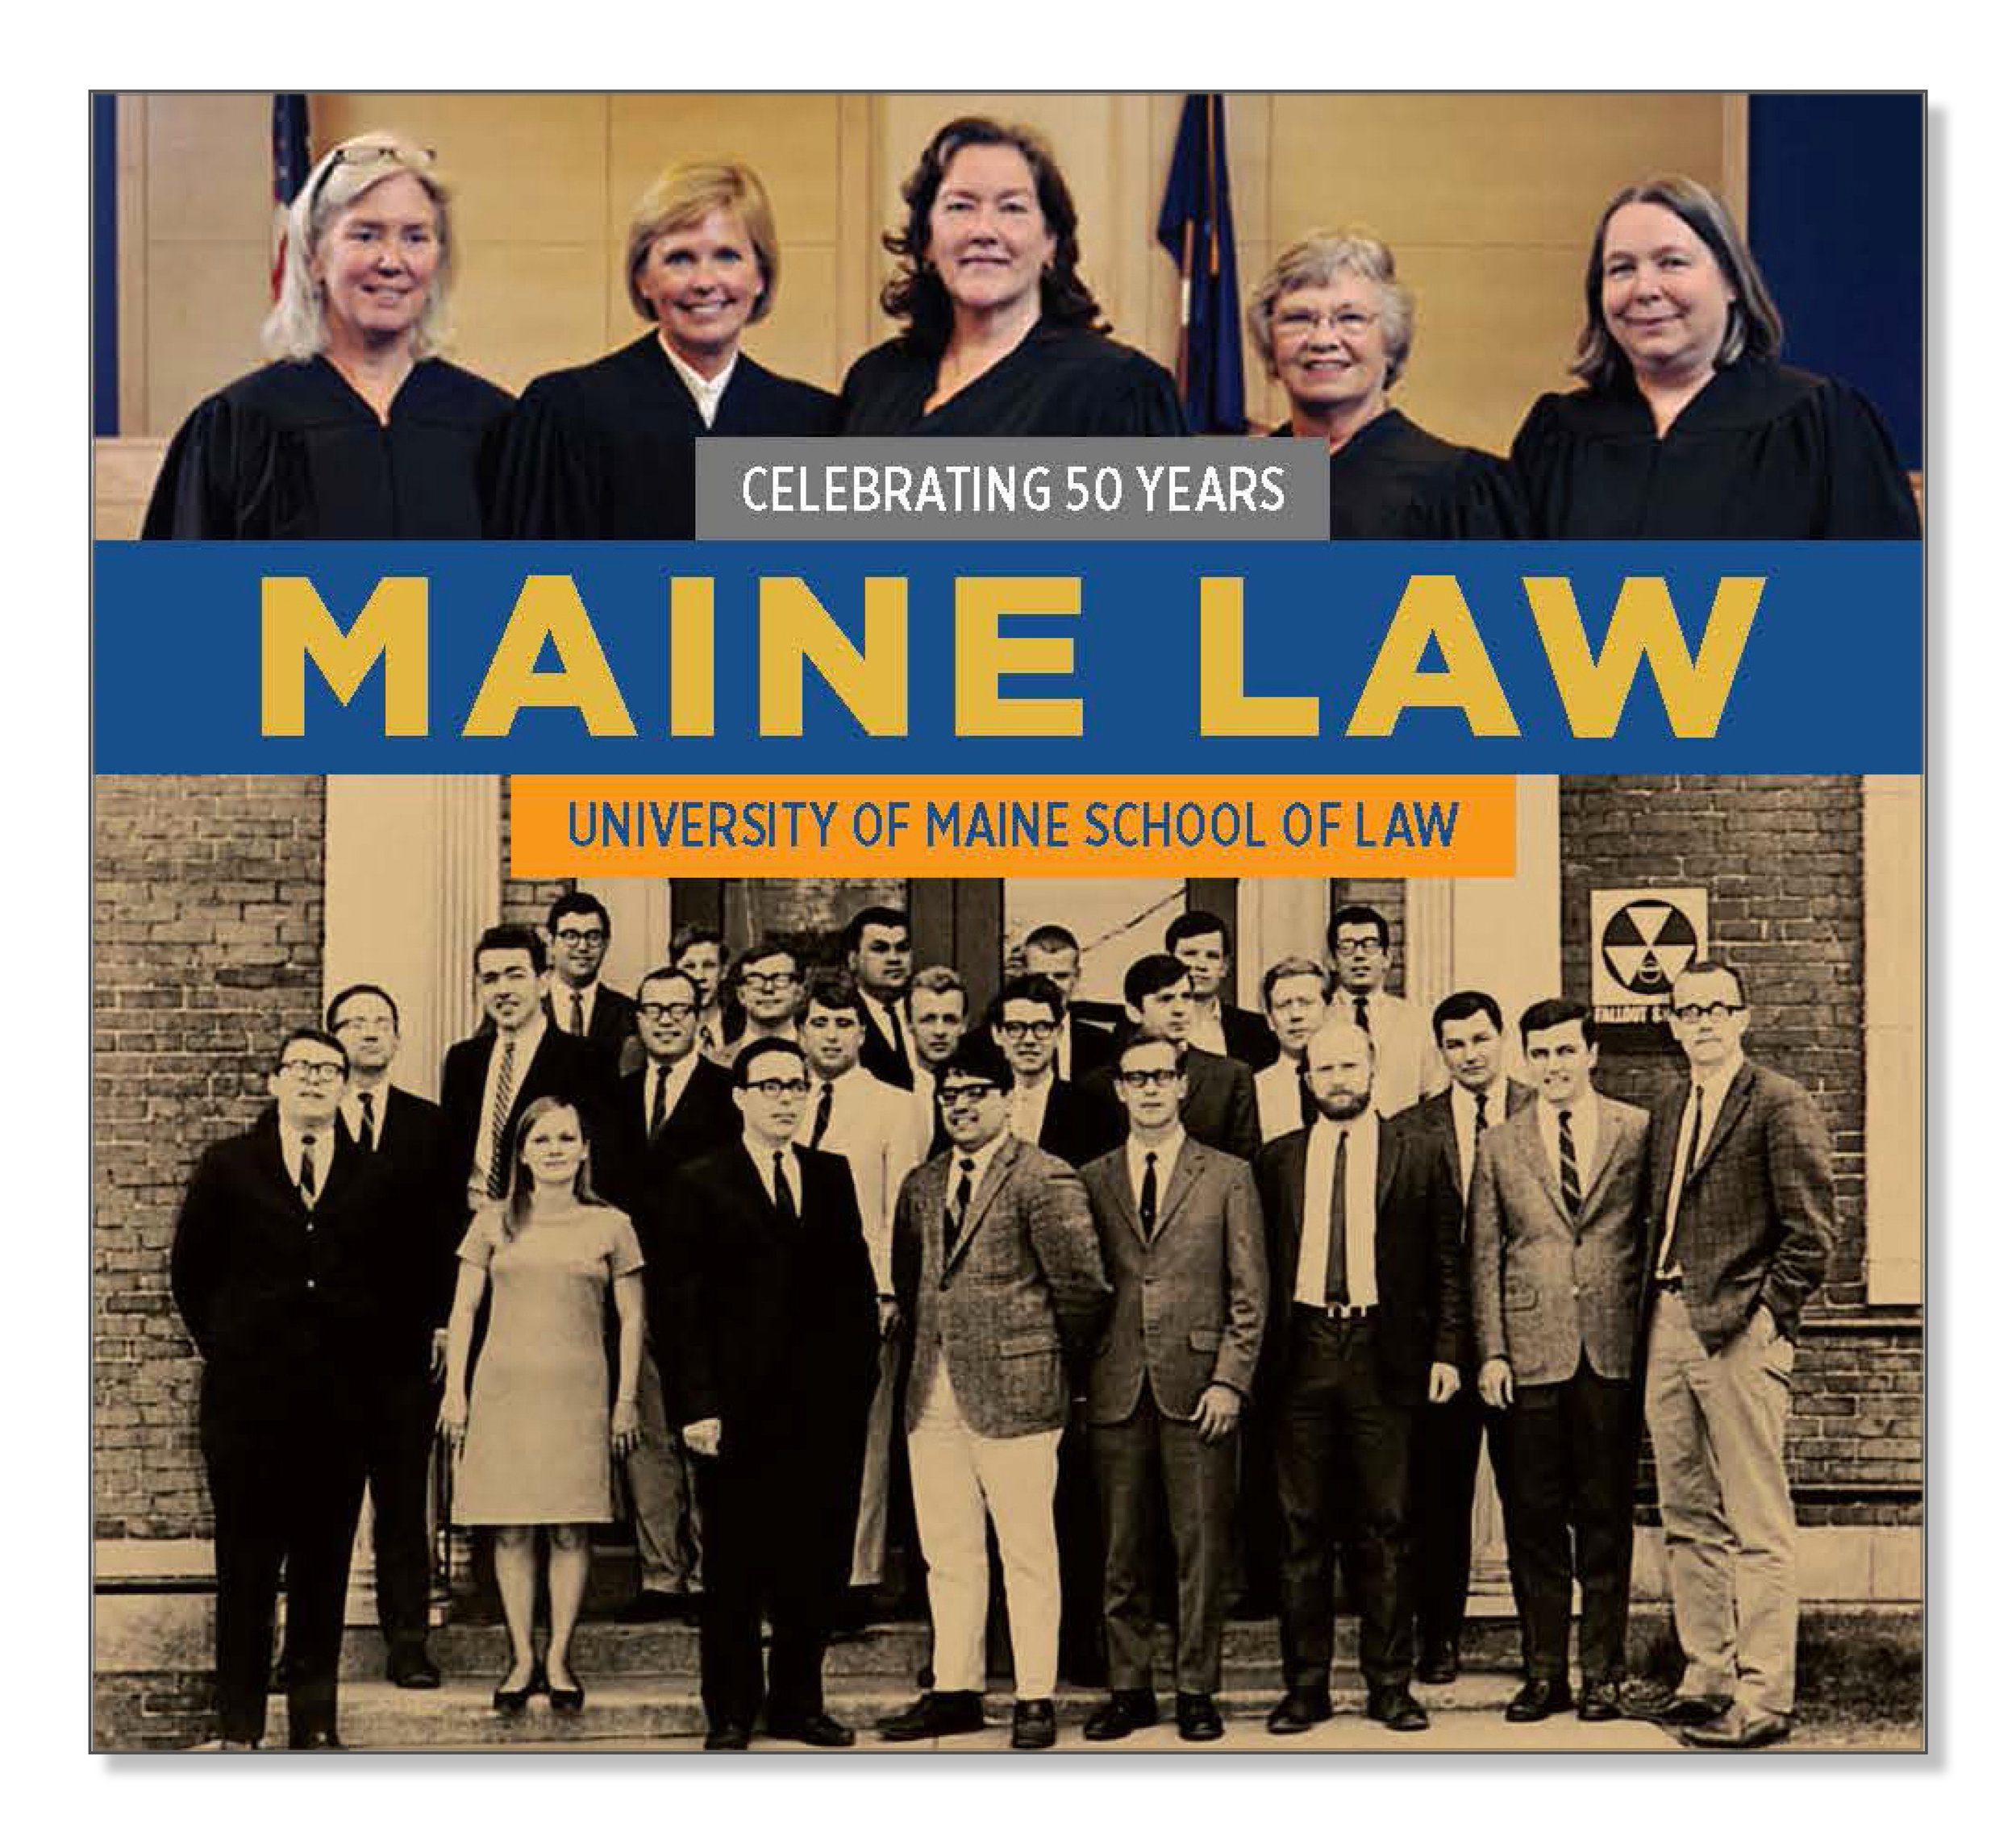 Maine Law School